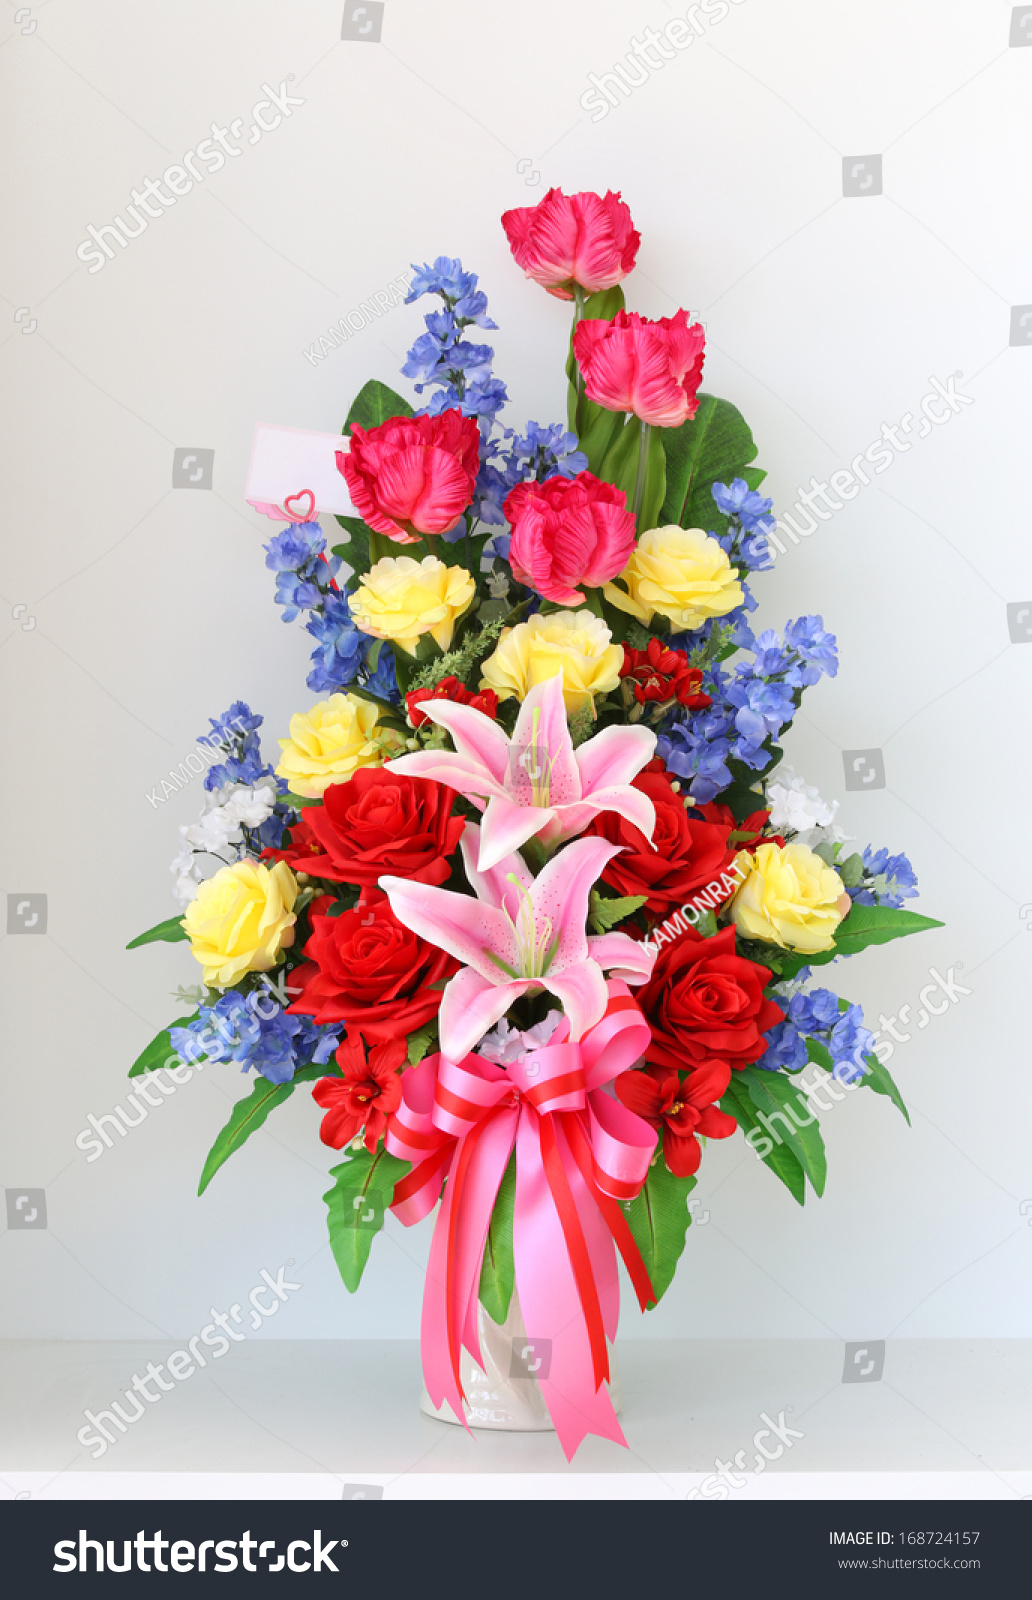 Colorful Bunch Flowers Vase Stock Photo & Image (Royalty-Free ...